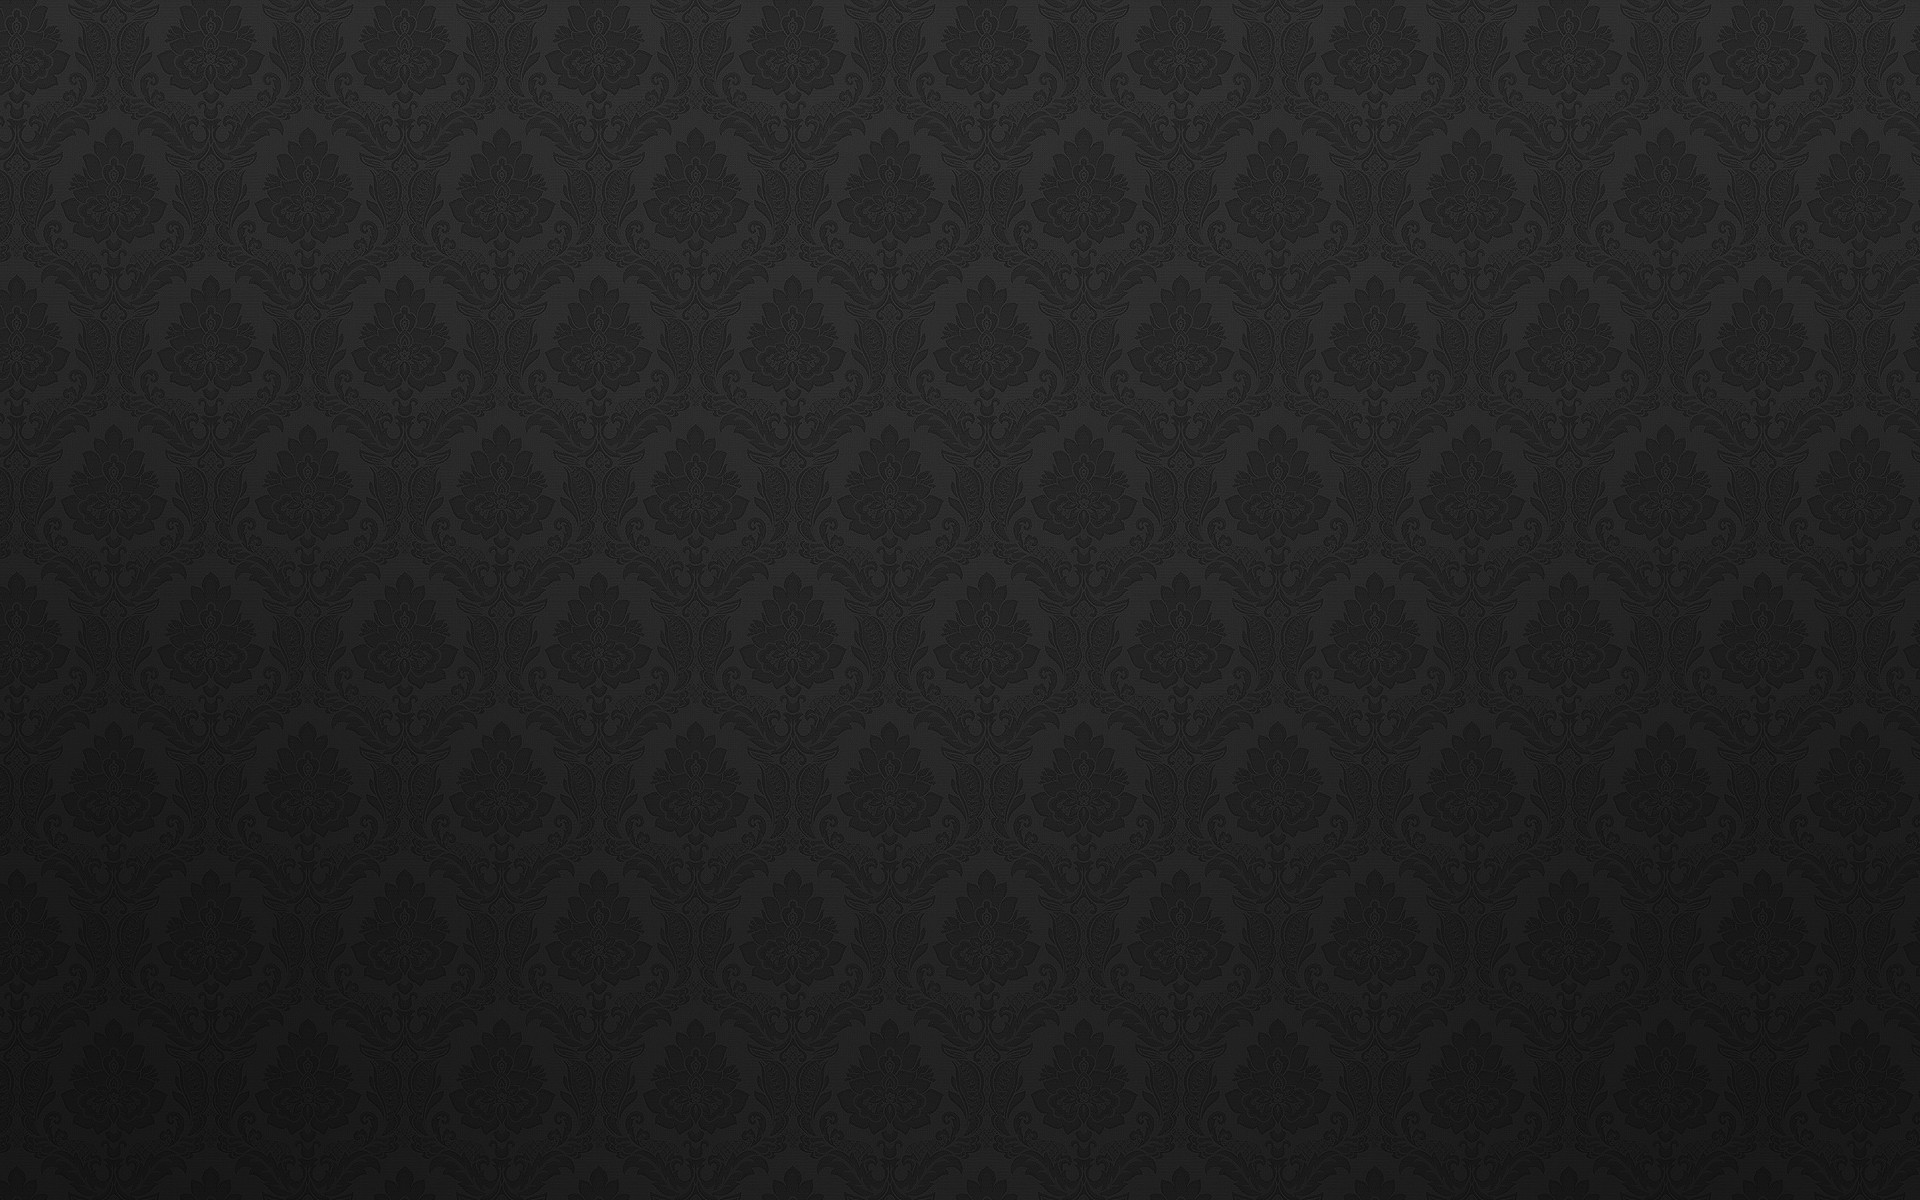 Hd wallpaper otife dark black plain design for Dark pattern background